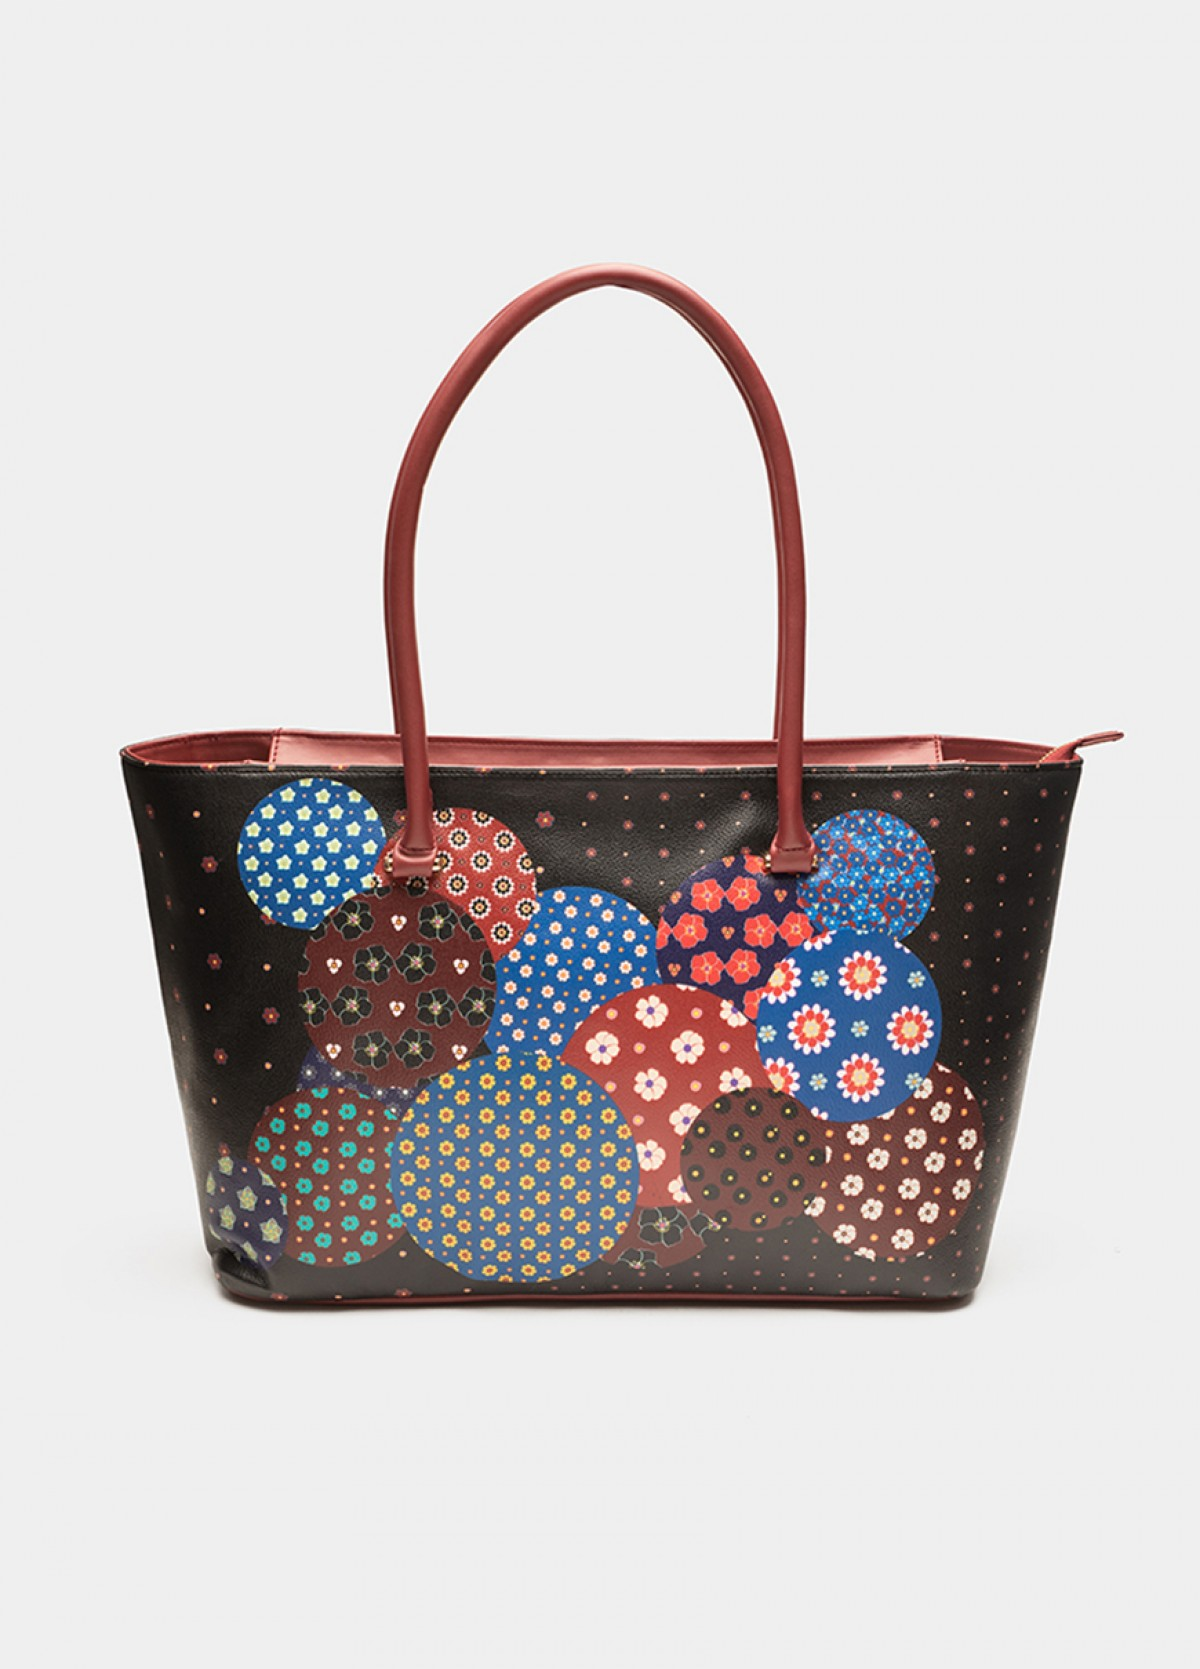 The Valley of Flowers Tote Bag